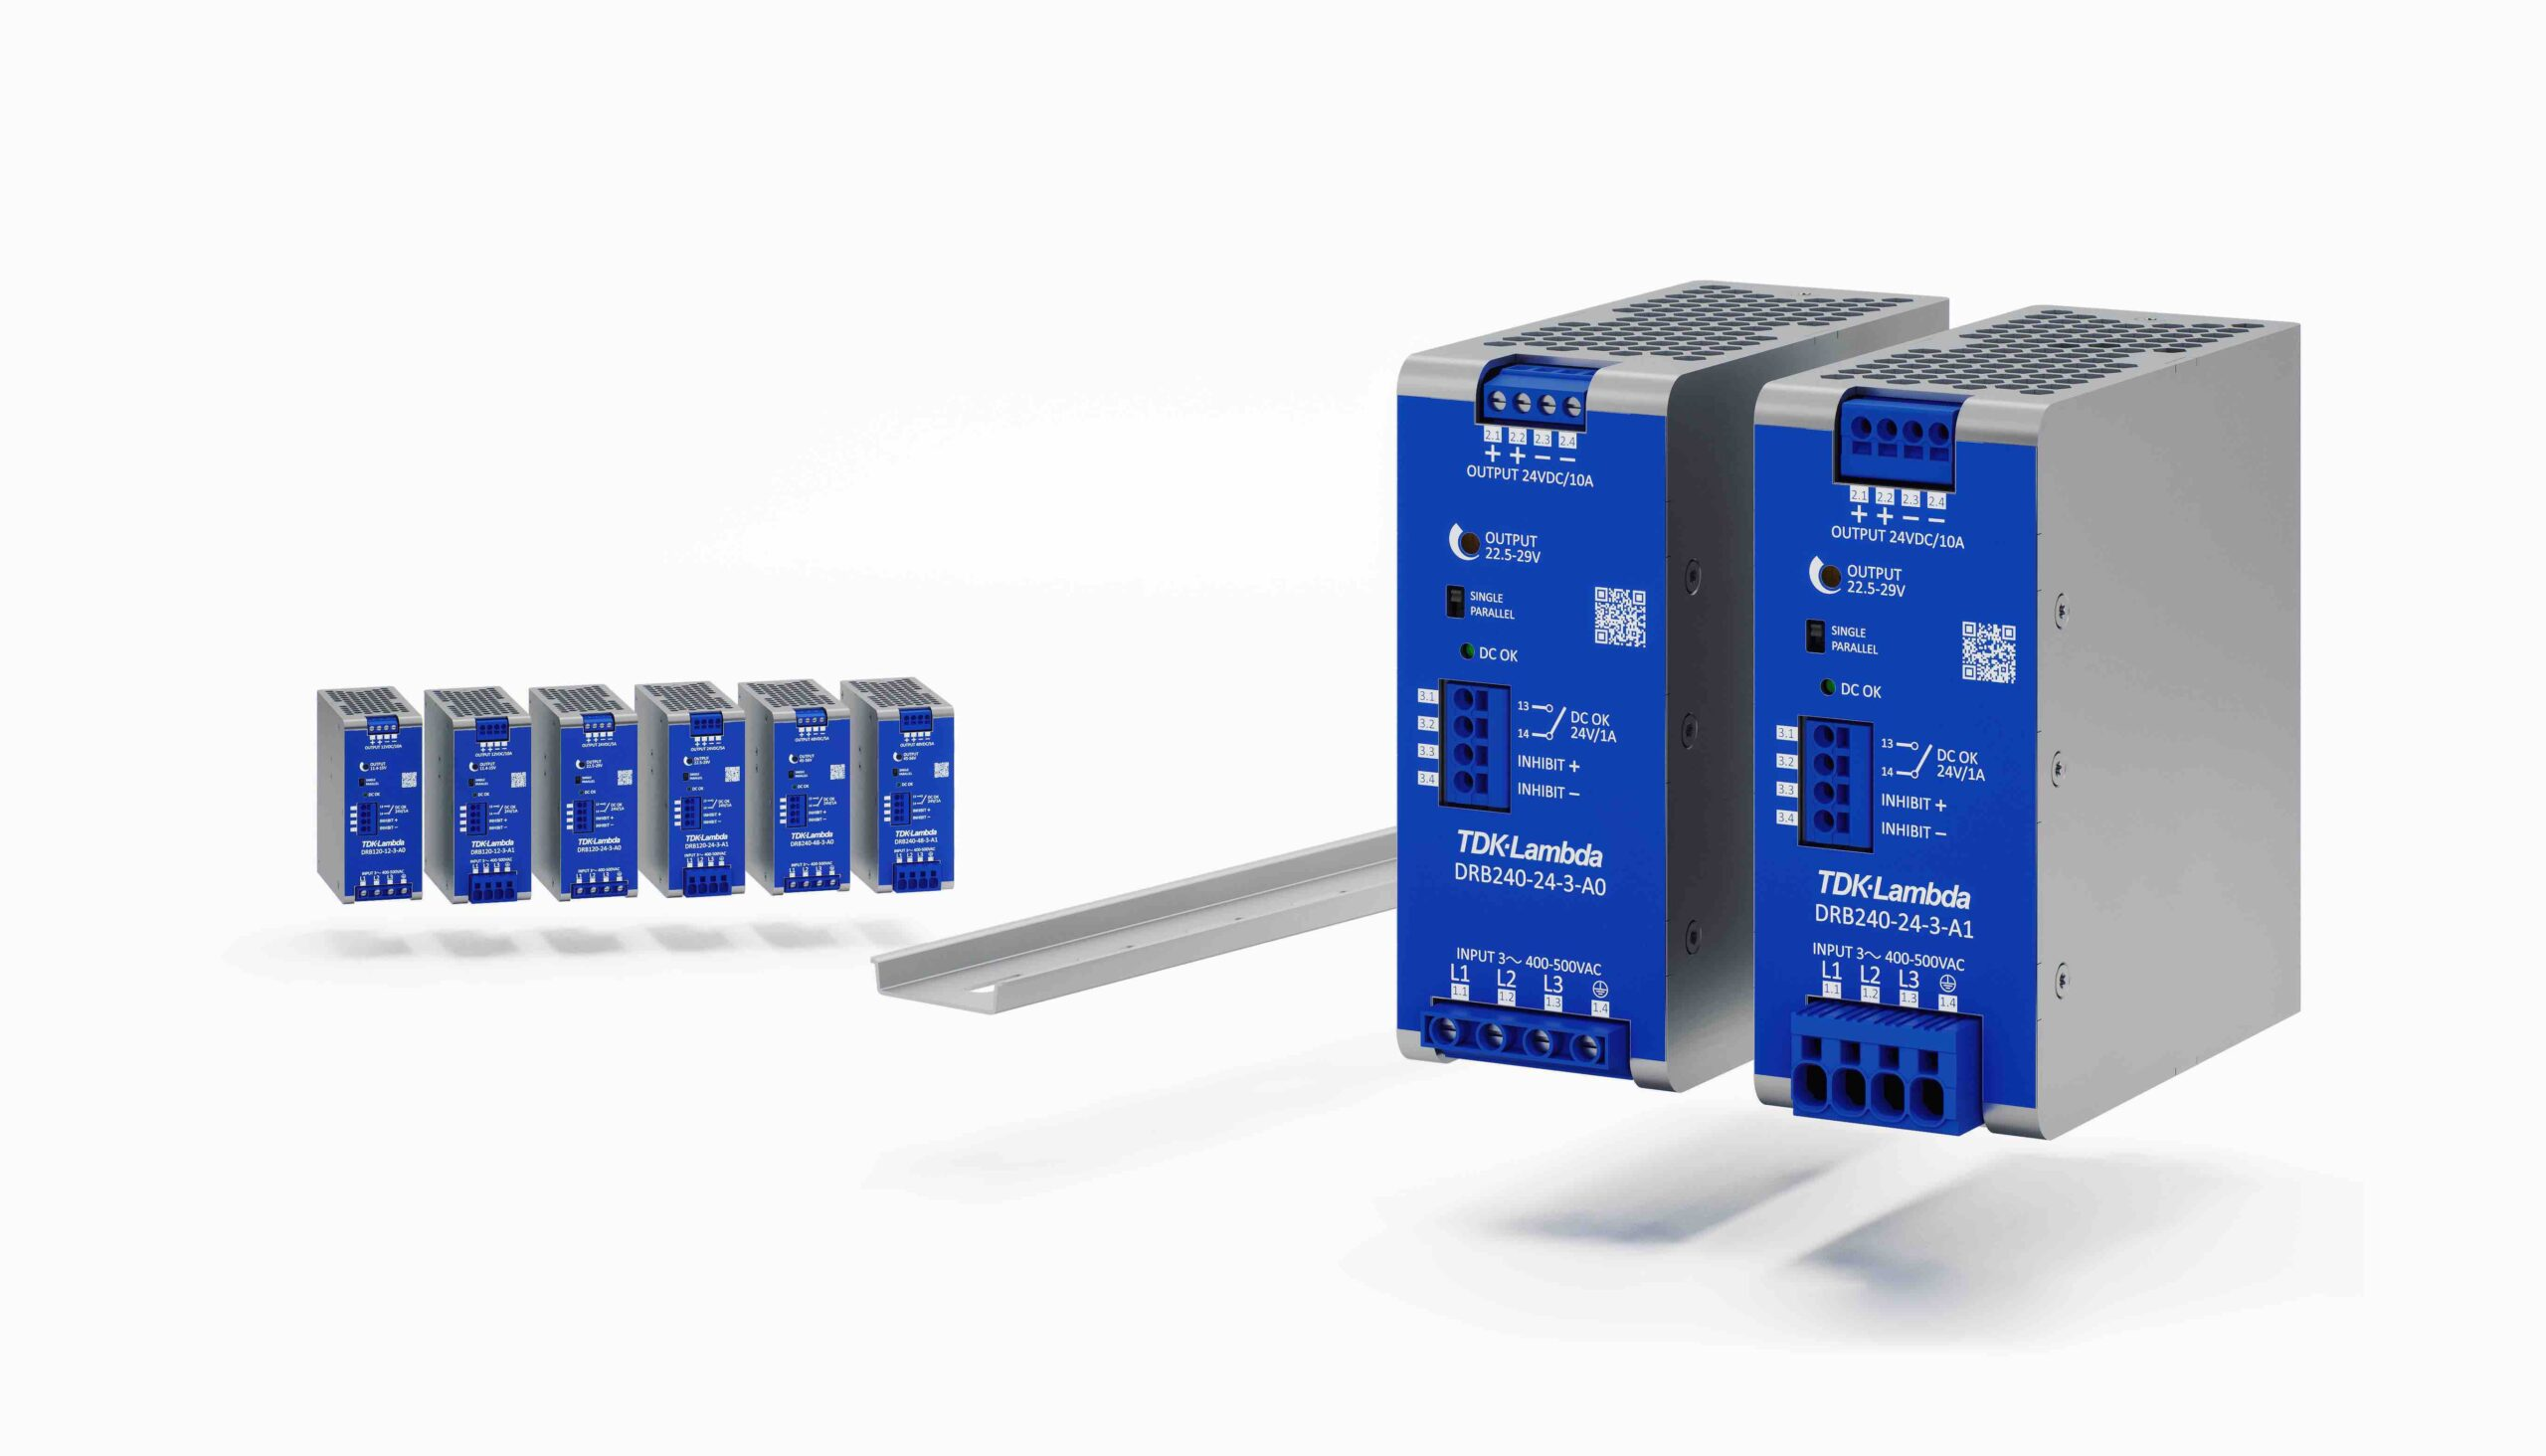 120W and 240W three-phase input DIN rail power supplies feature +20% peak power capability